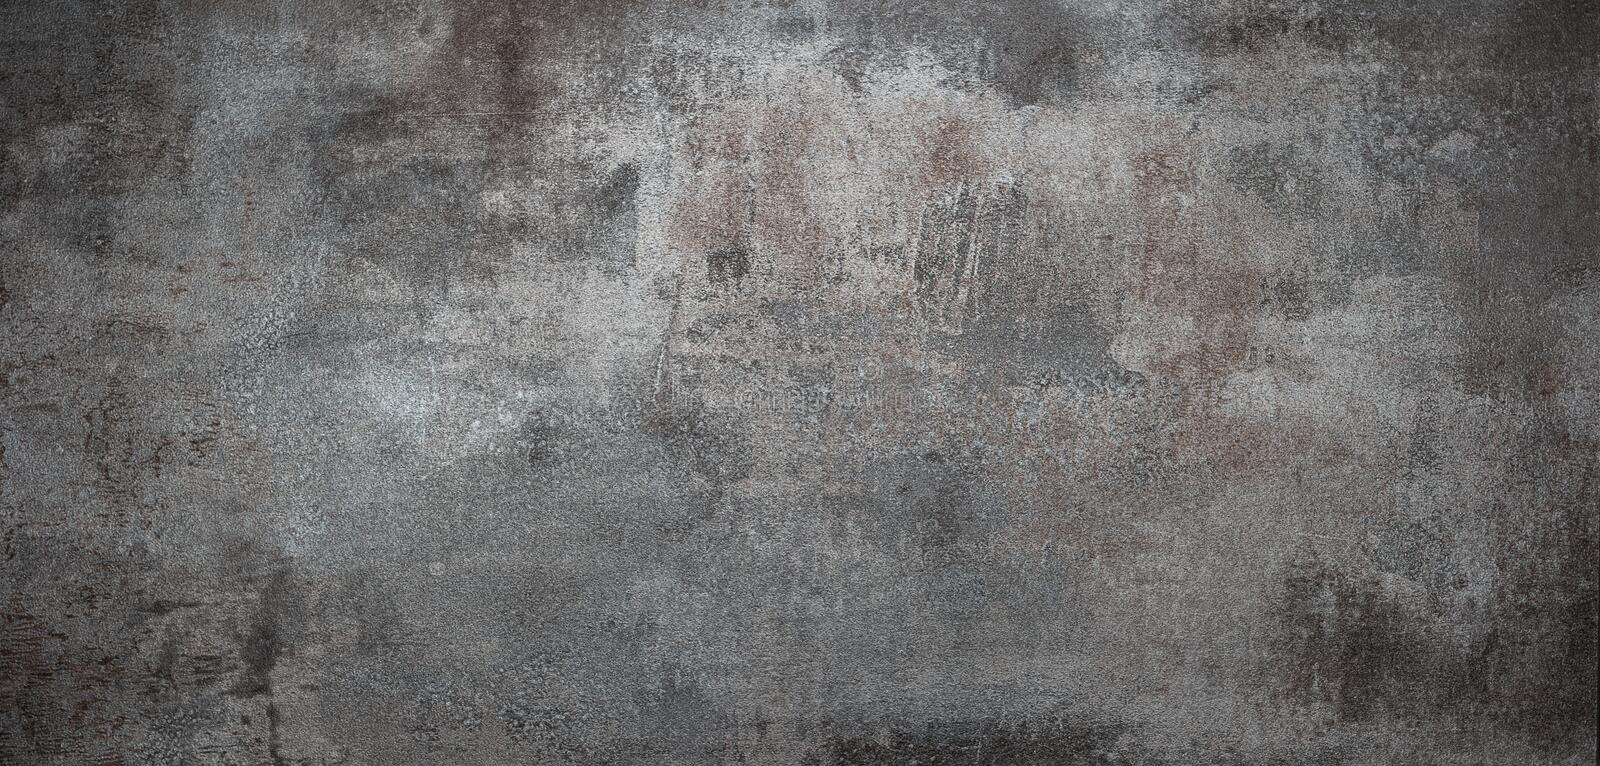 Grunge metal texture. Grunge metal background or texture with scratches and cracks